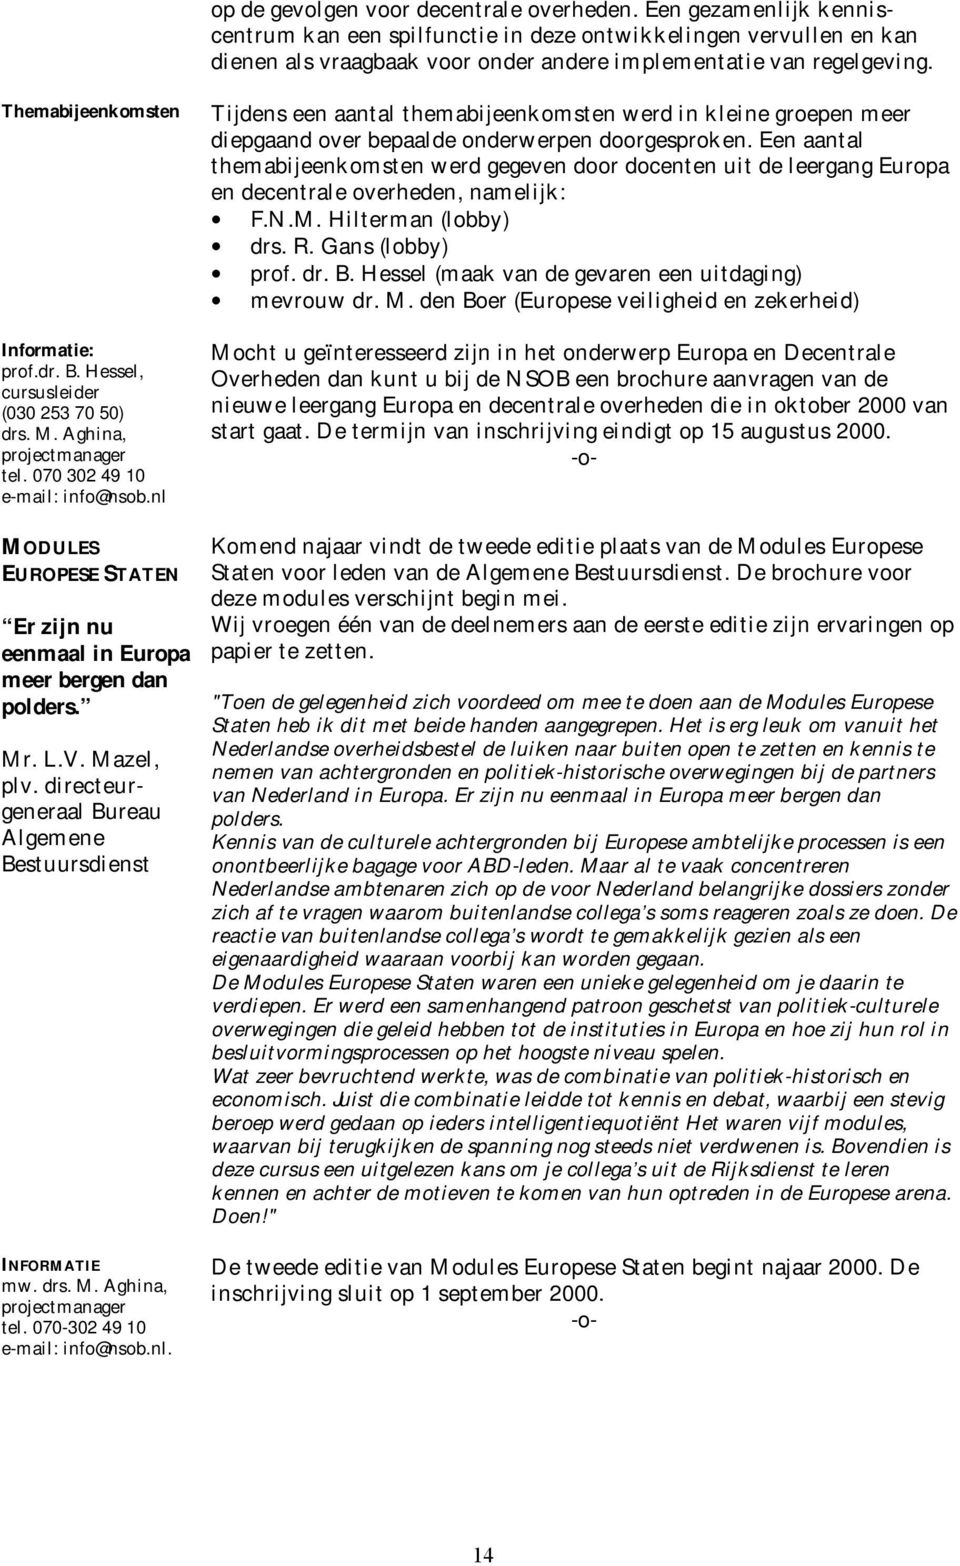 B. Hessel, cursusleider (030 253 70 50) drs. M. Aghina, projectmanager tel. 070 302 49 10 e-mail: info@nsob.nl MODULES EUROPESE STATEN Er zijn nu eenmaal in Europa meer bergen dan polders. Mr. L.V.